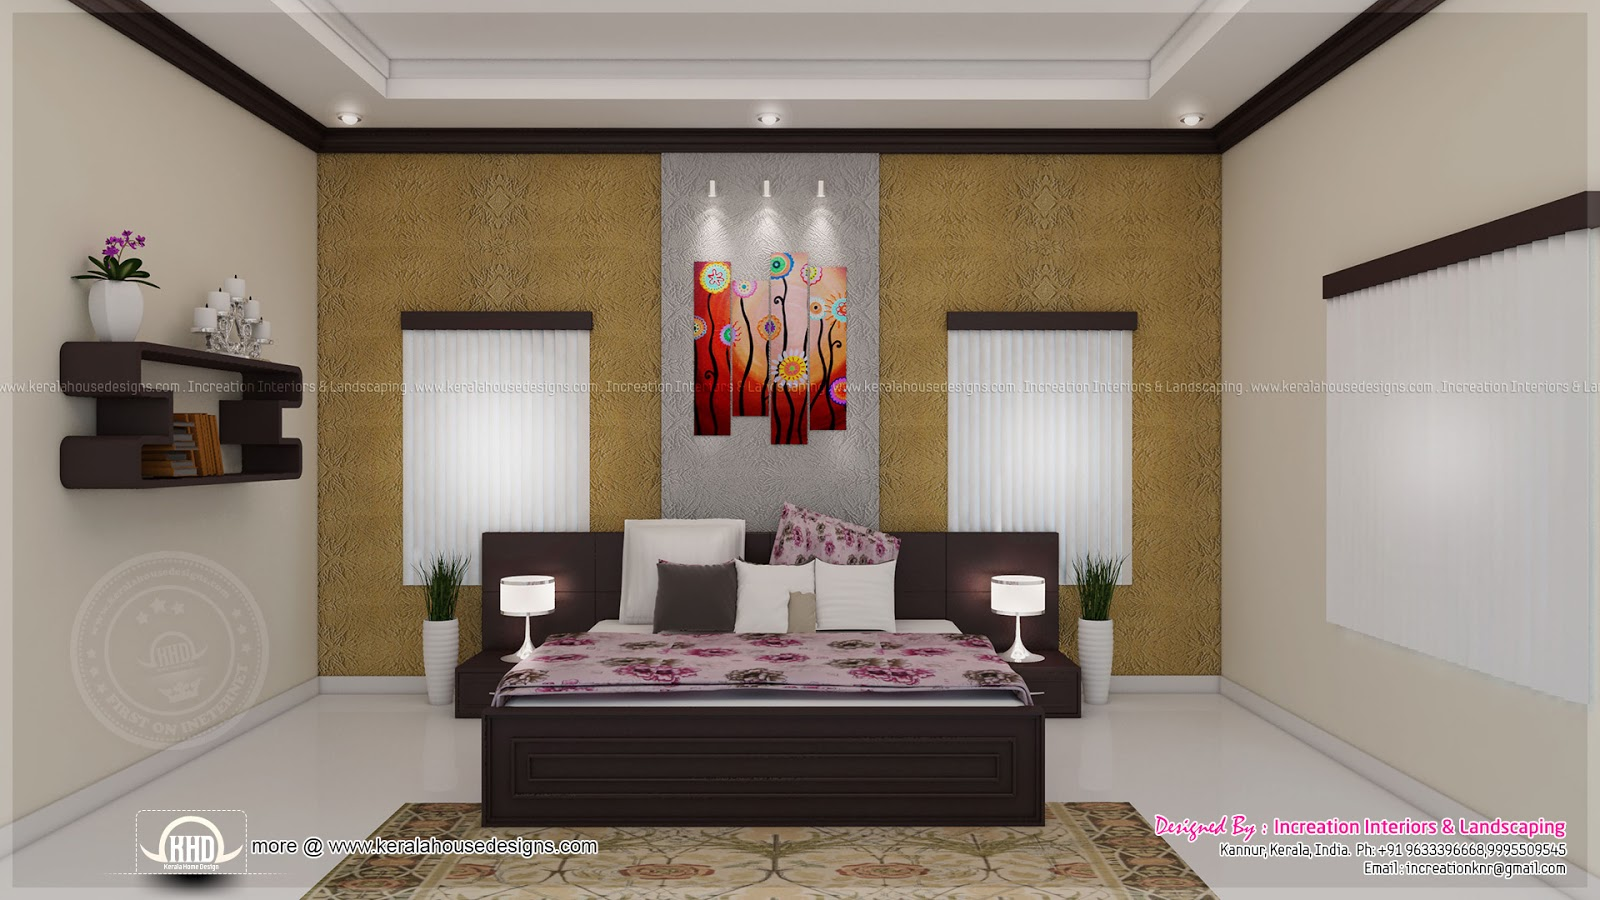 House interior ideas in 3d rendering kerala home design for House interior design bedroom